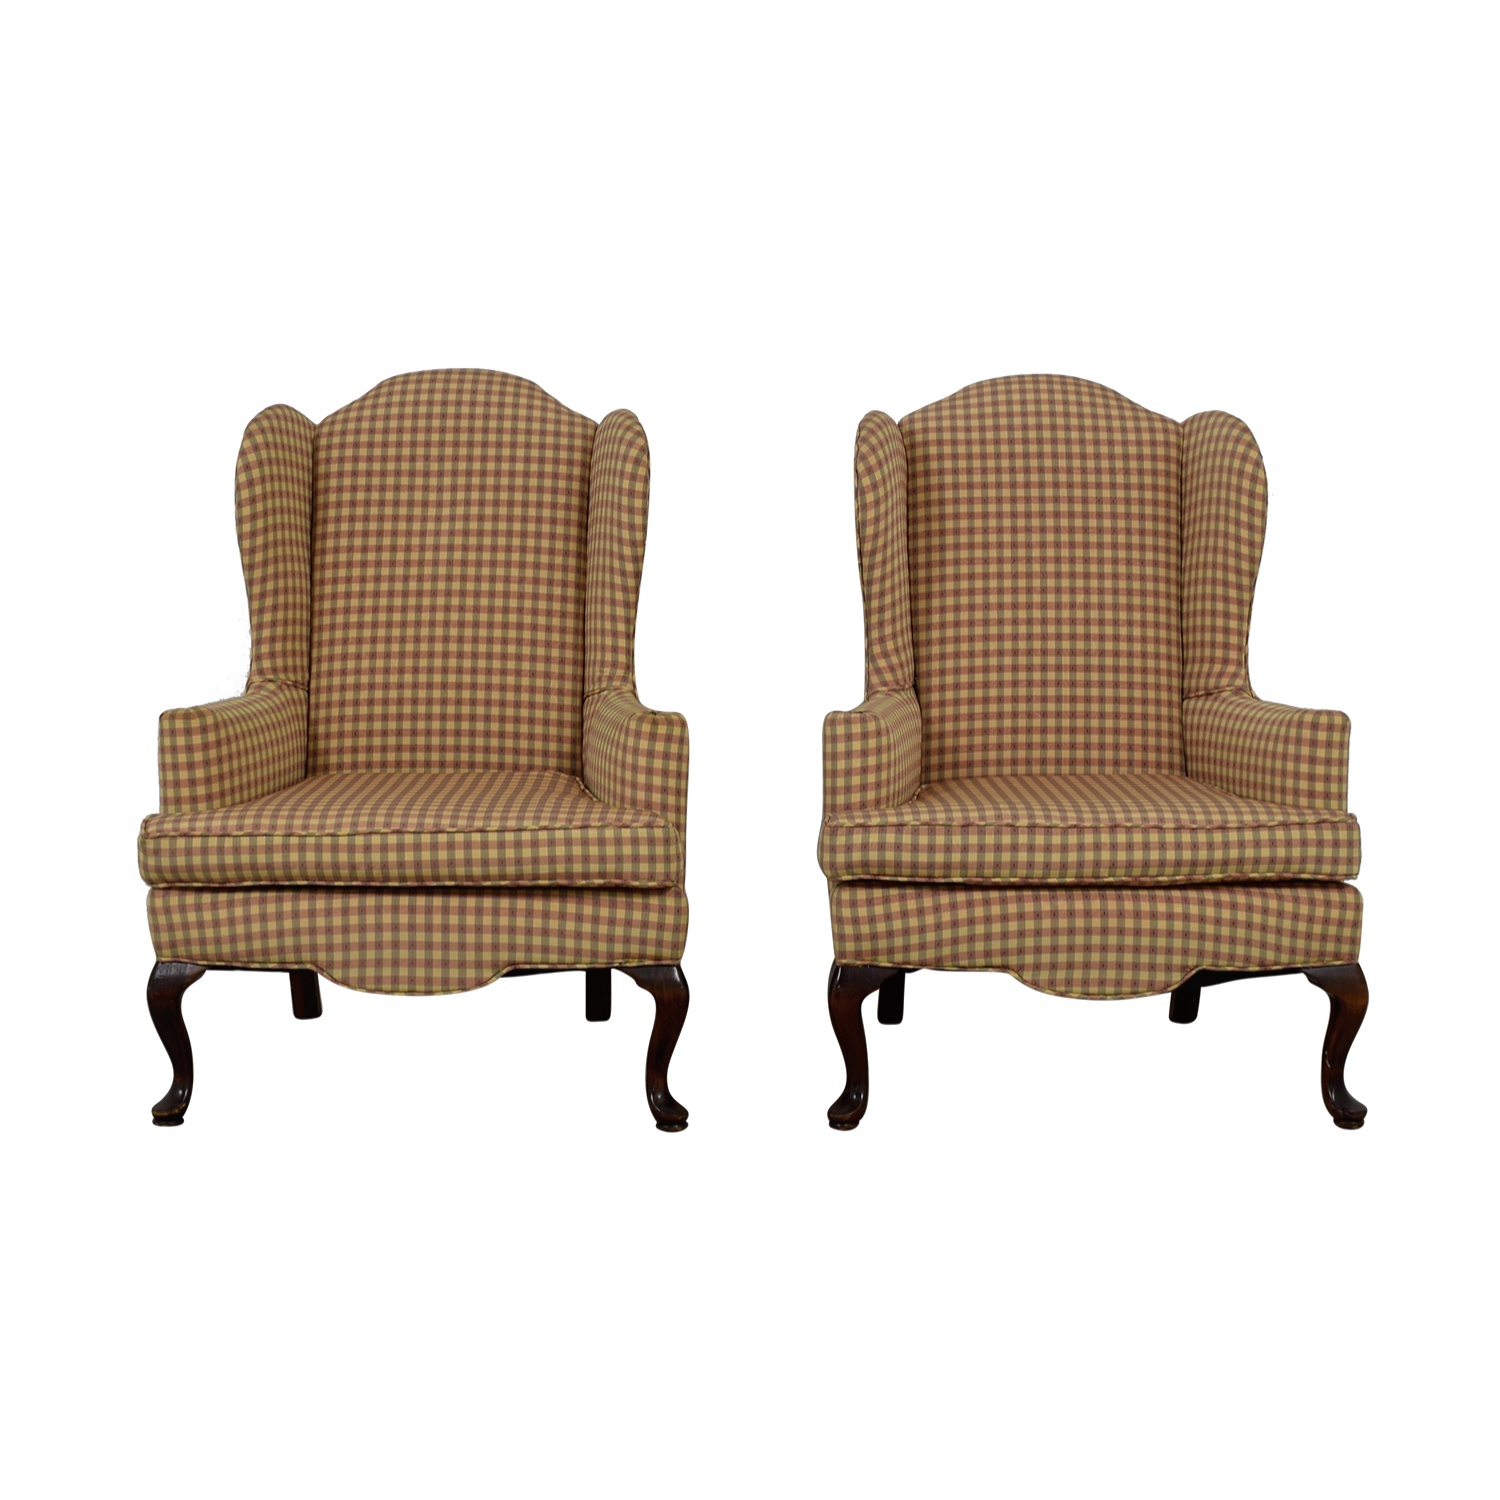 88 Off Ethan Allen Plaid Queen Anne Accent Chairs